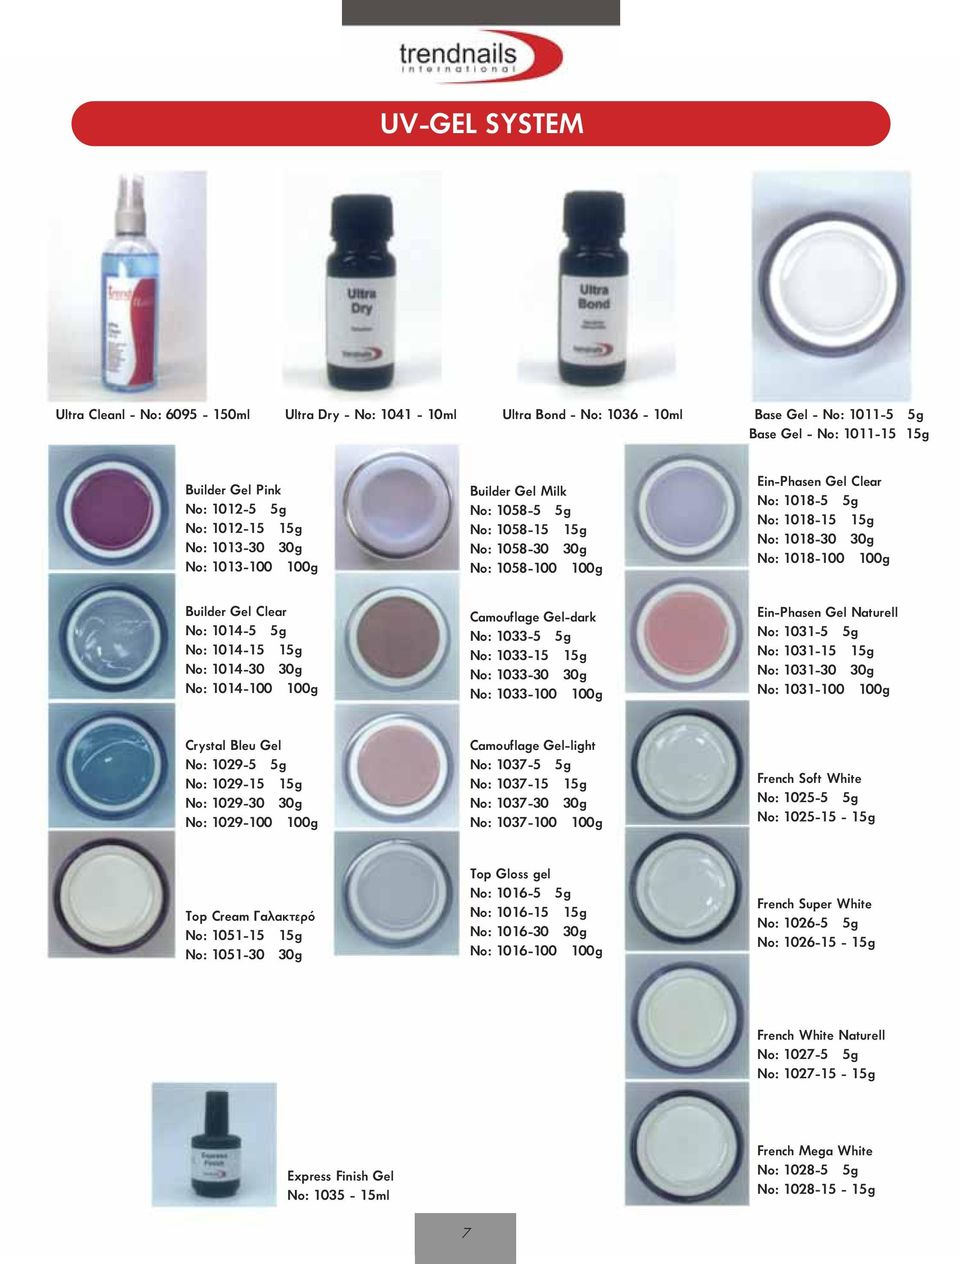 Camouflage Gel-dark No: 1033-5 5g No: 1033-15 15g No: 1033-30 30g No: 1033-100 100g Ein-Phasen Gel Clear No: 1018-5 5g No: 1018-15 15g No: 1018-30 30g No: 1018-100 100g Ein-Phasen Gel Naturell No: